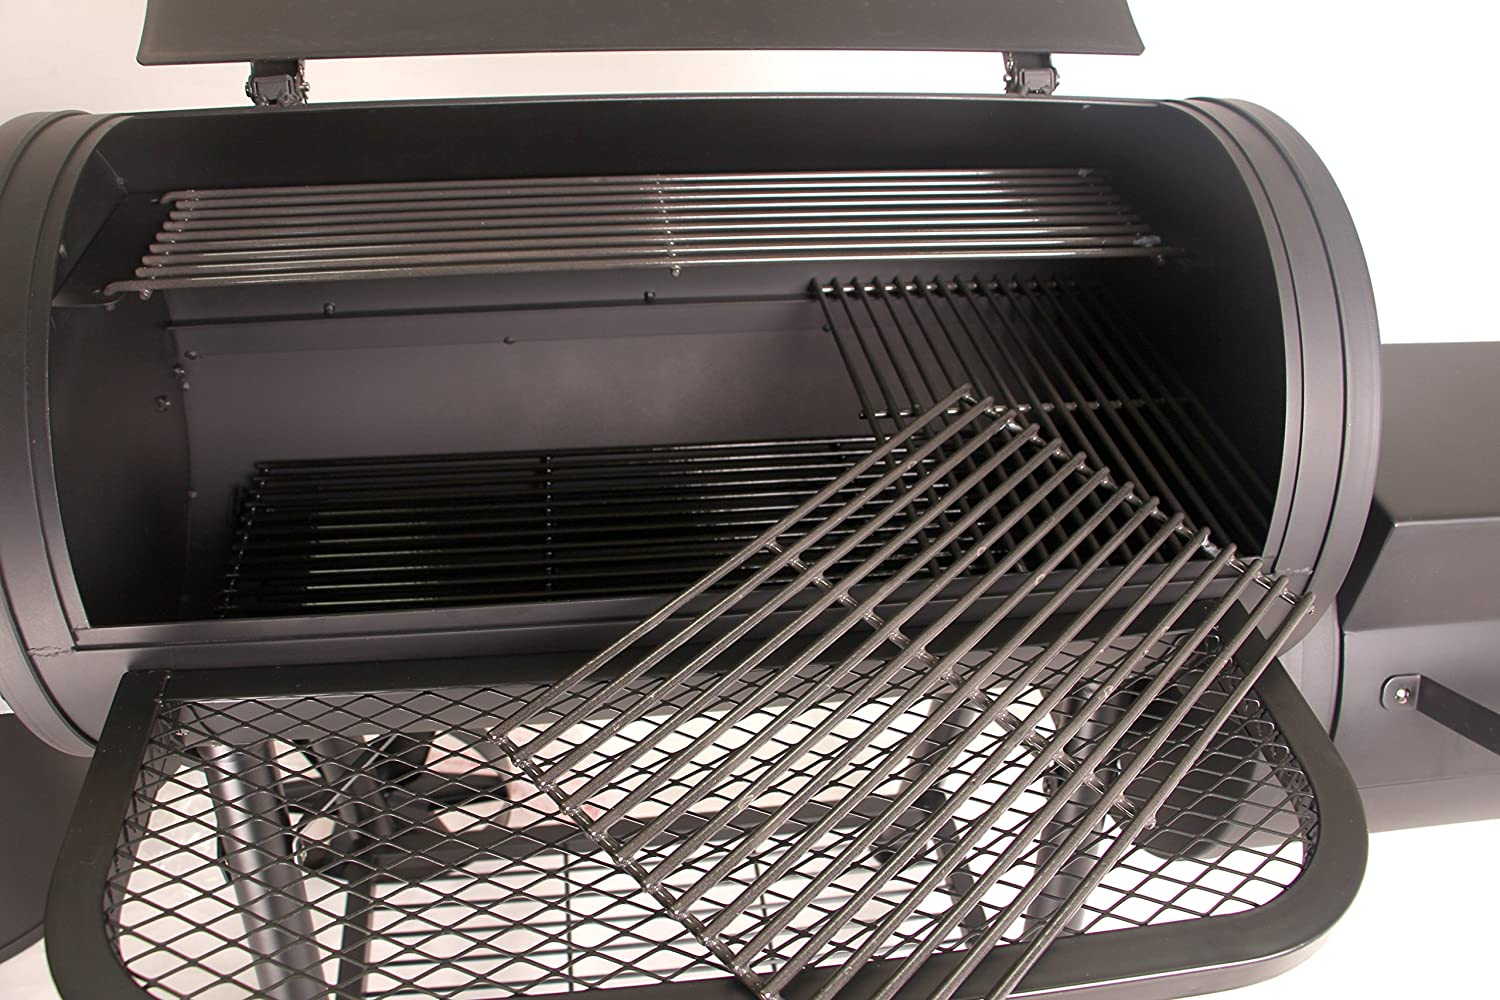 90 kg Grill Smoker